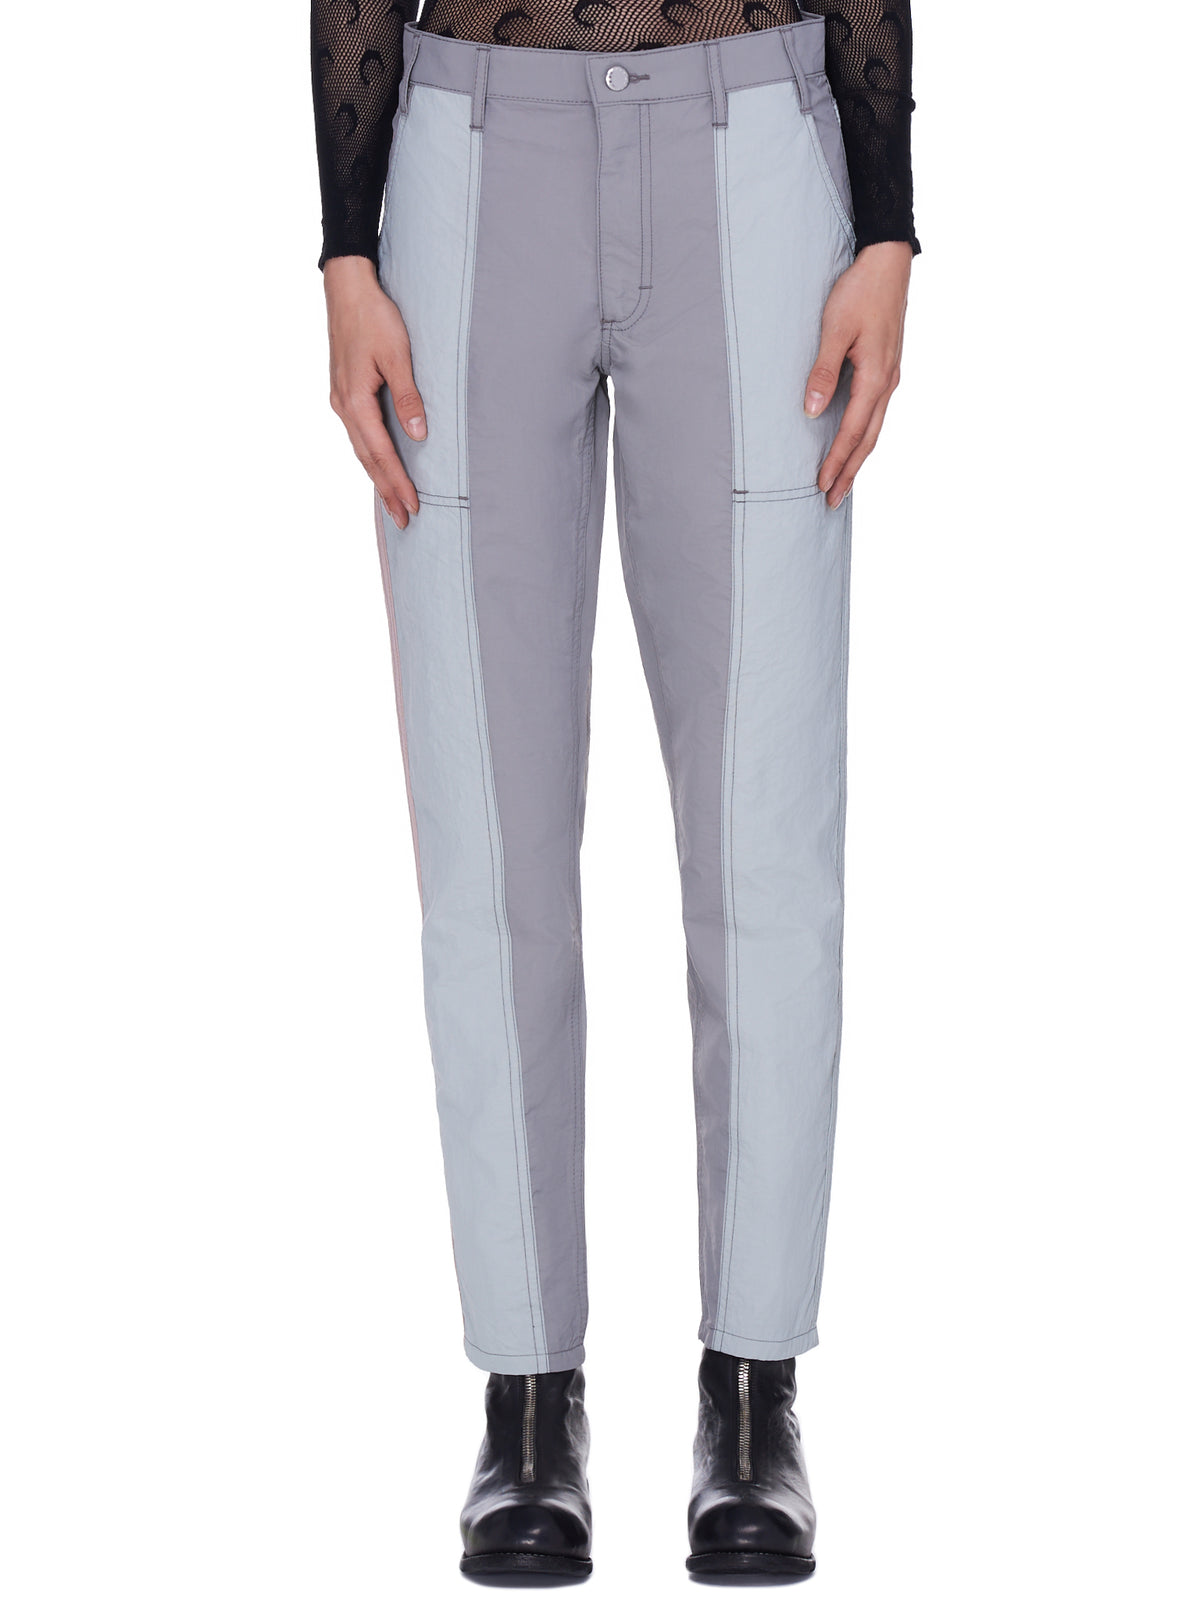 Blunt Trousers (339-EL-GREY-MULTI)